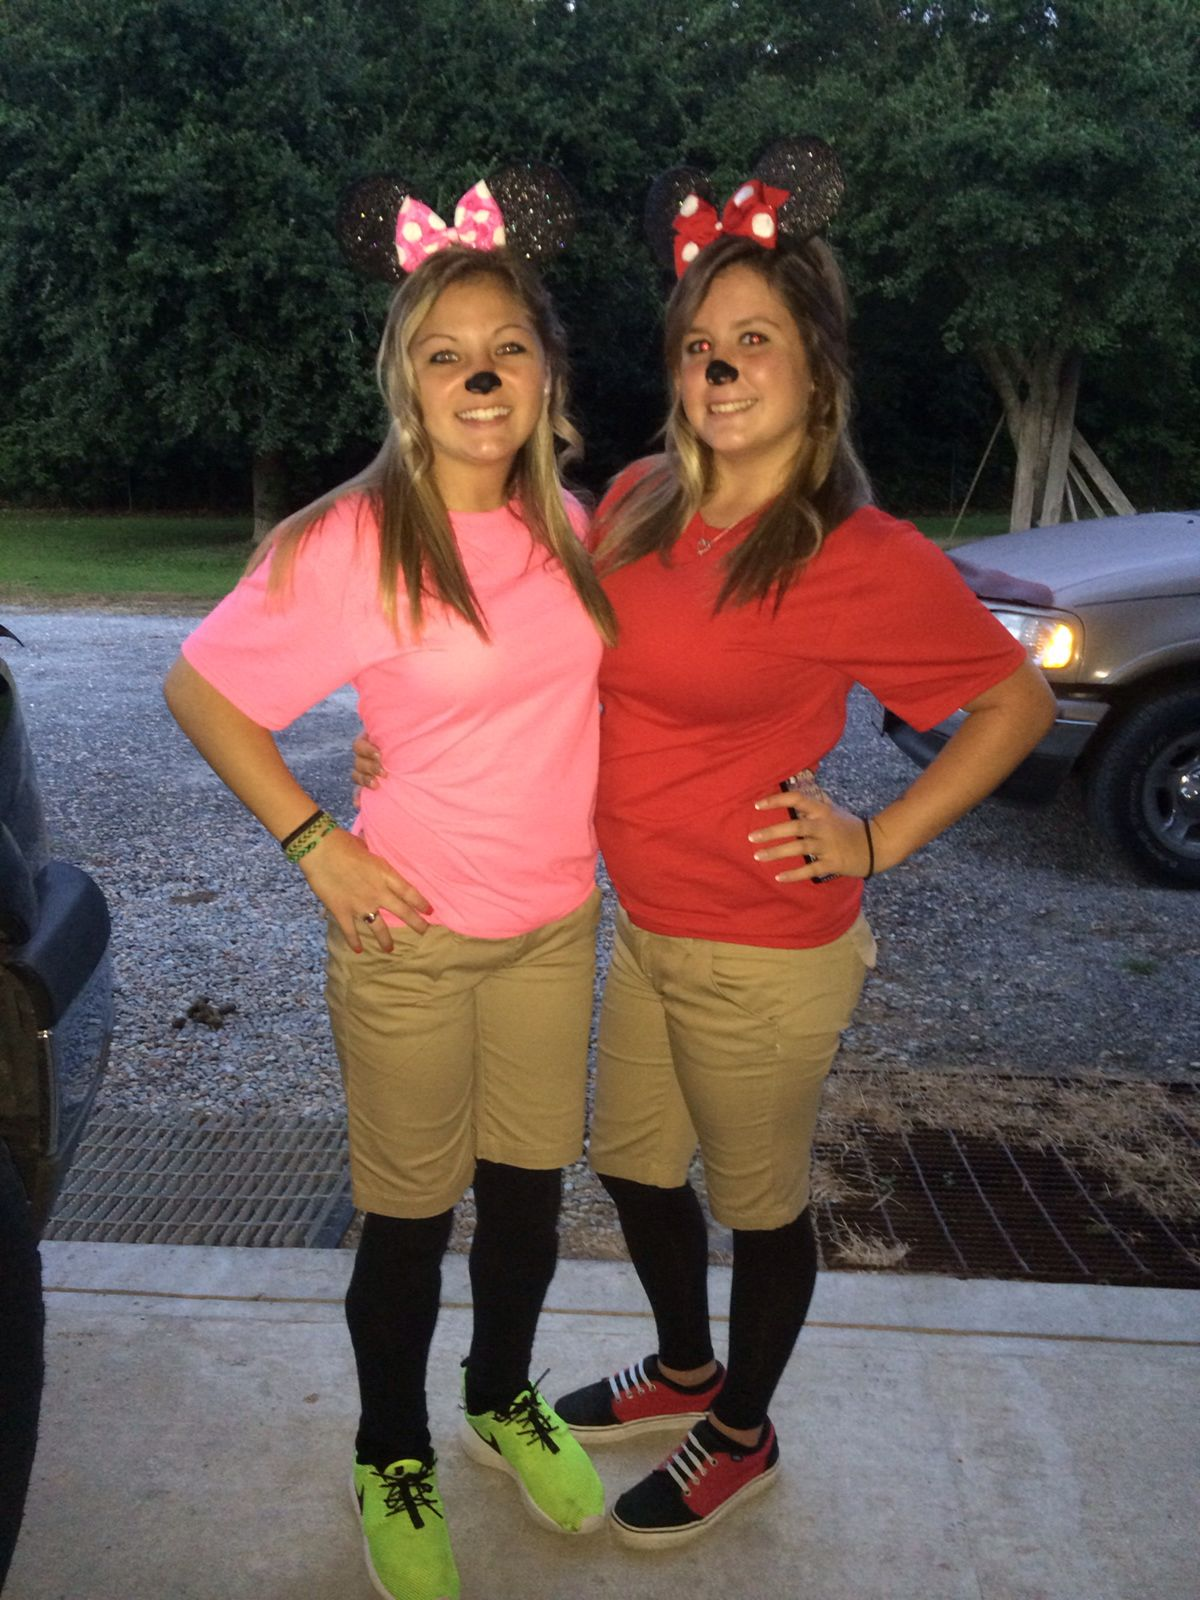 For Twin Day My Bestfriend In The Pink And I Dressed Up As